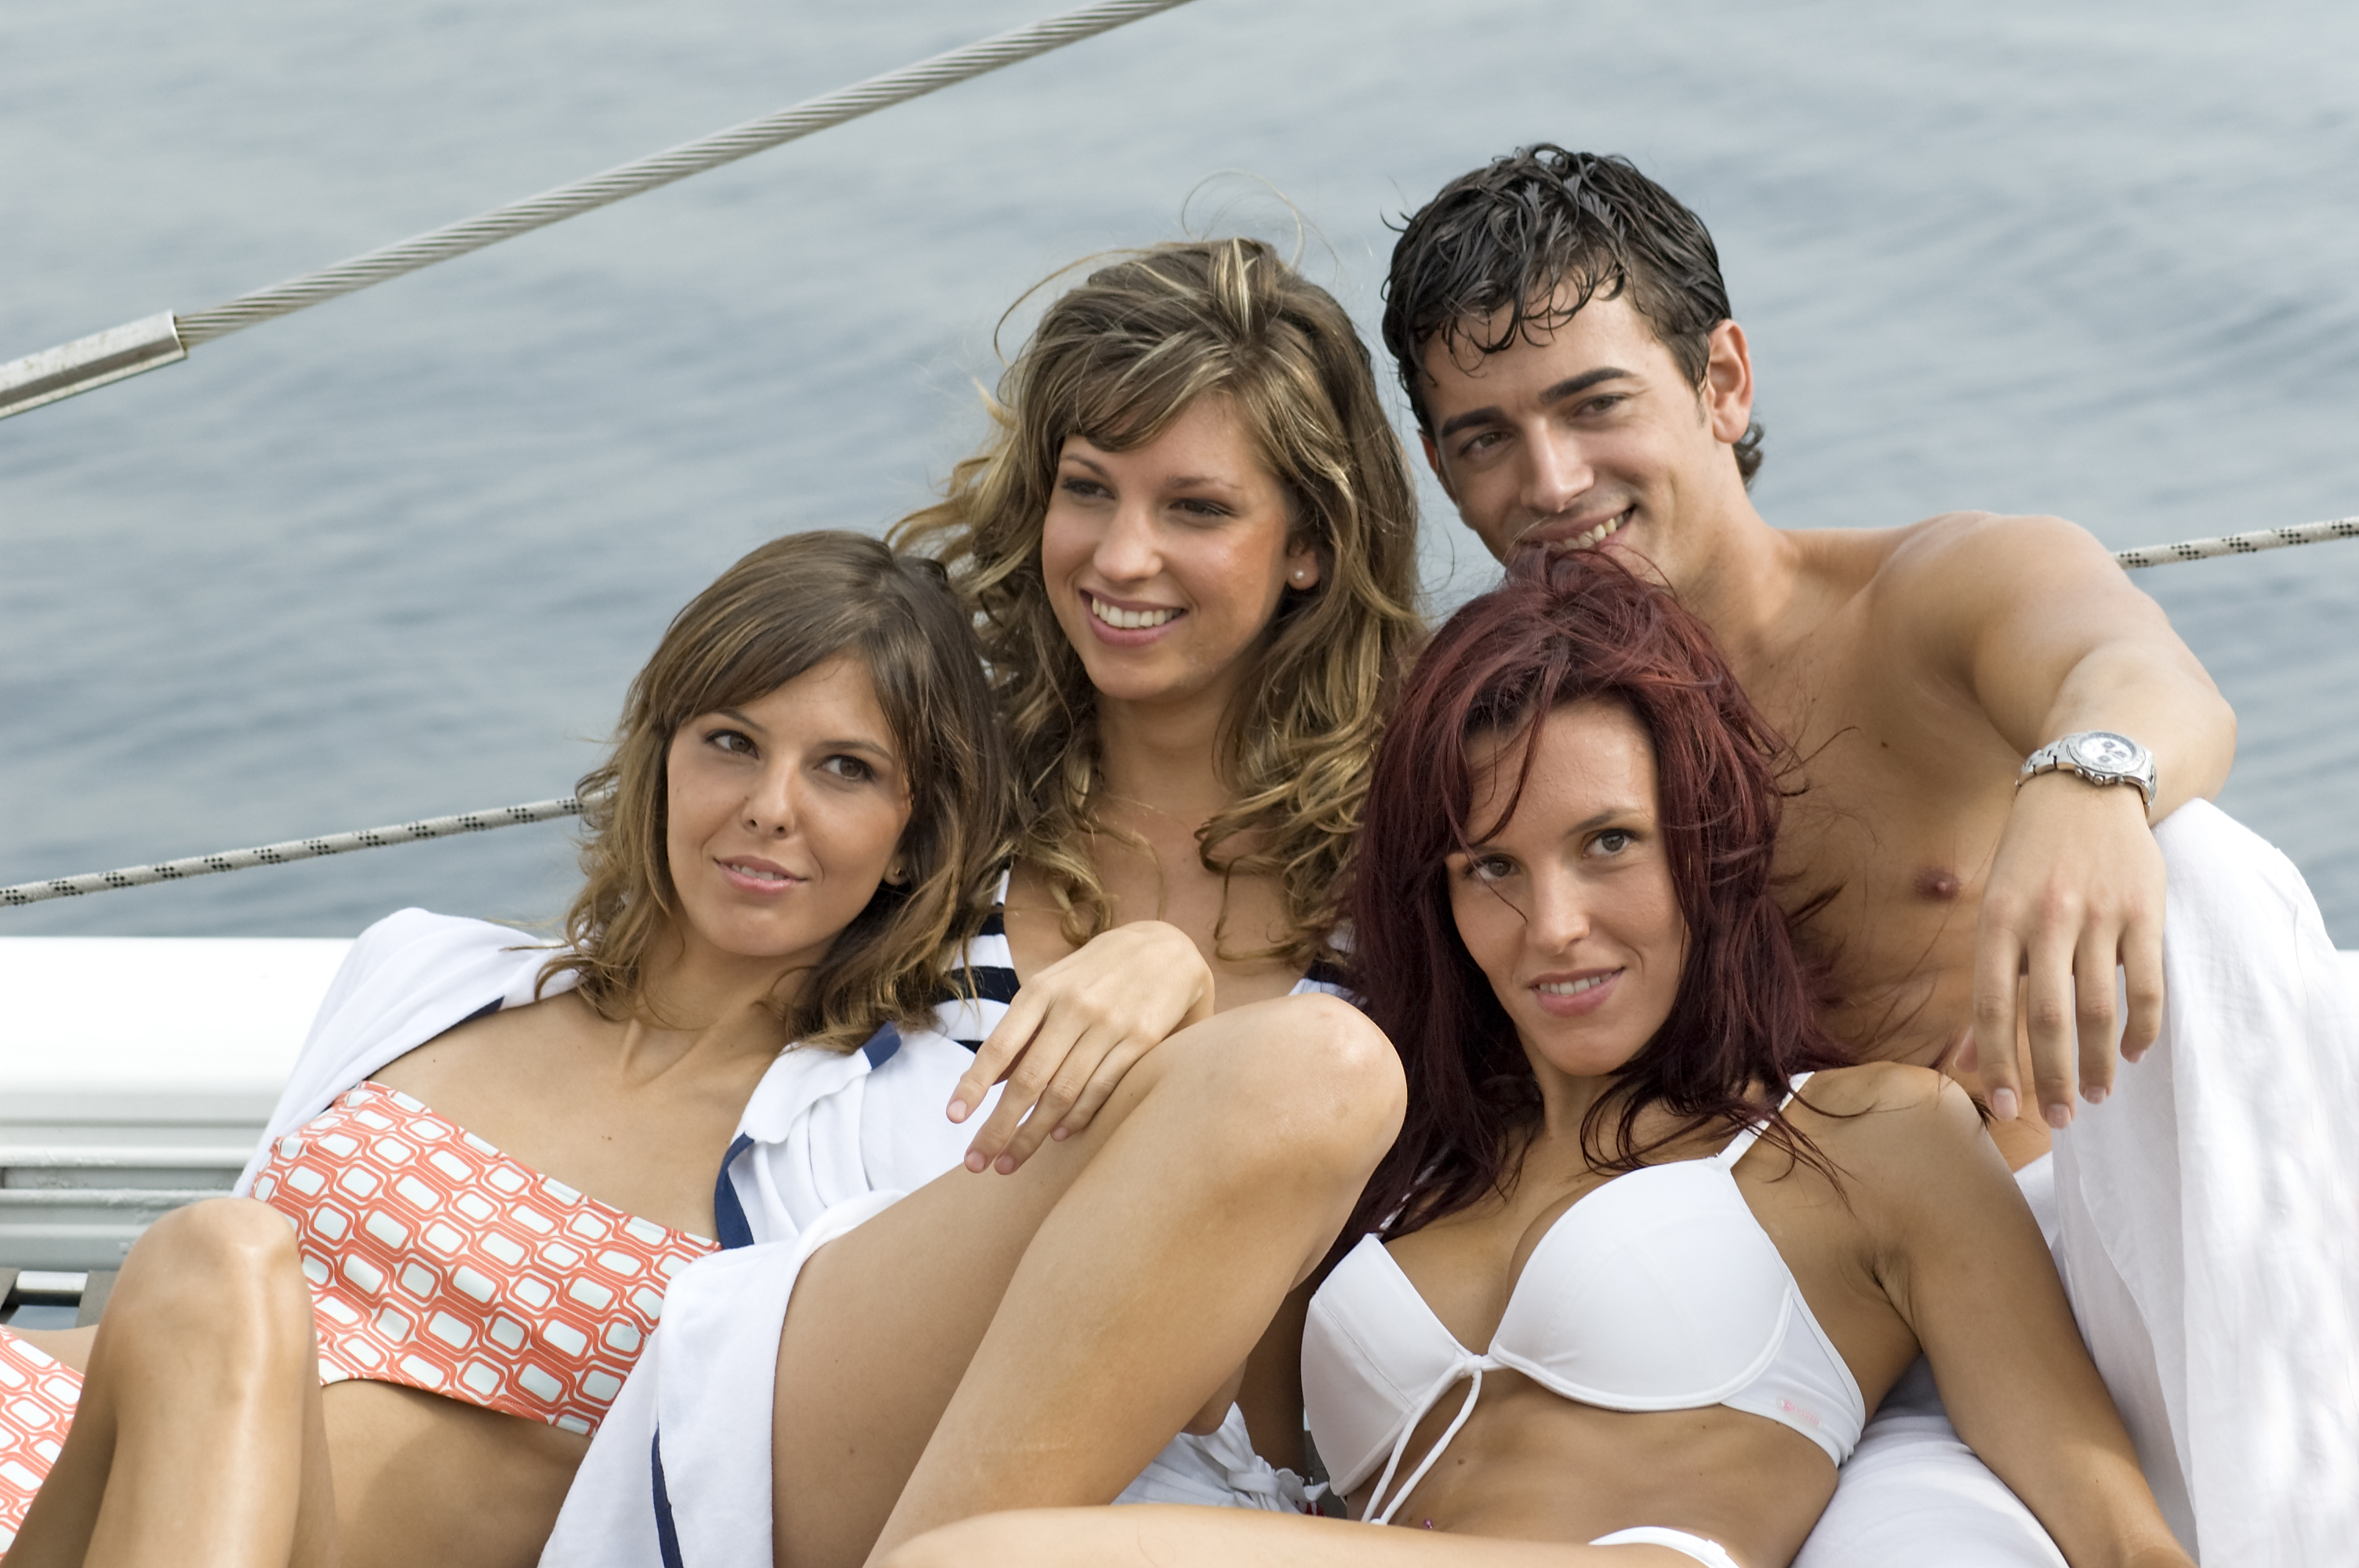 Online Dating: Why Do Men Post Photos With Hot, Half-Naked Girls All Over Them?